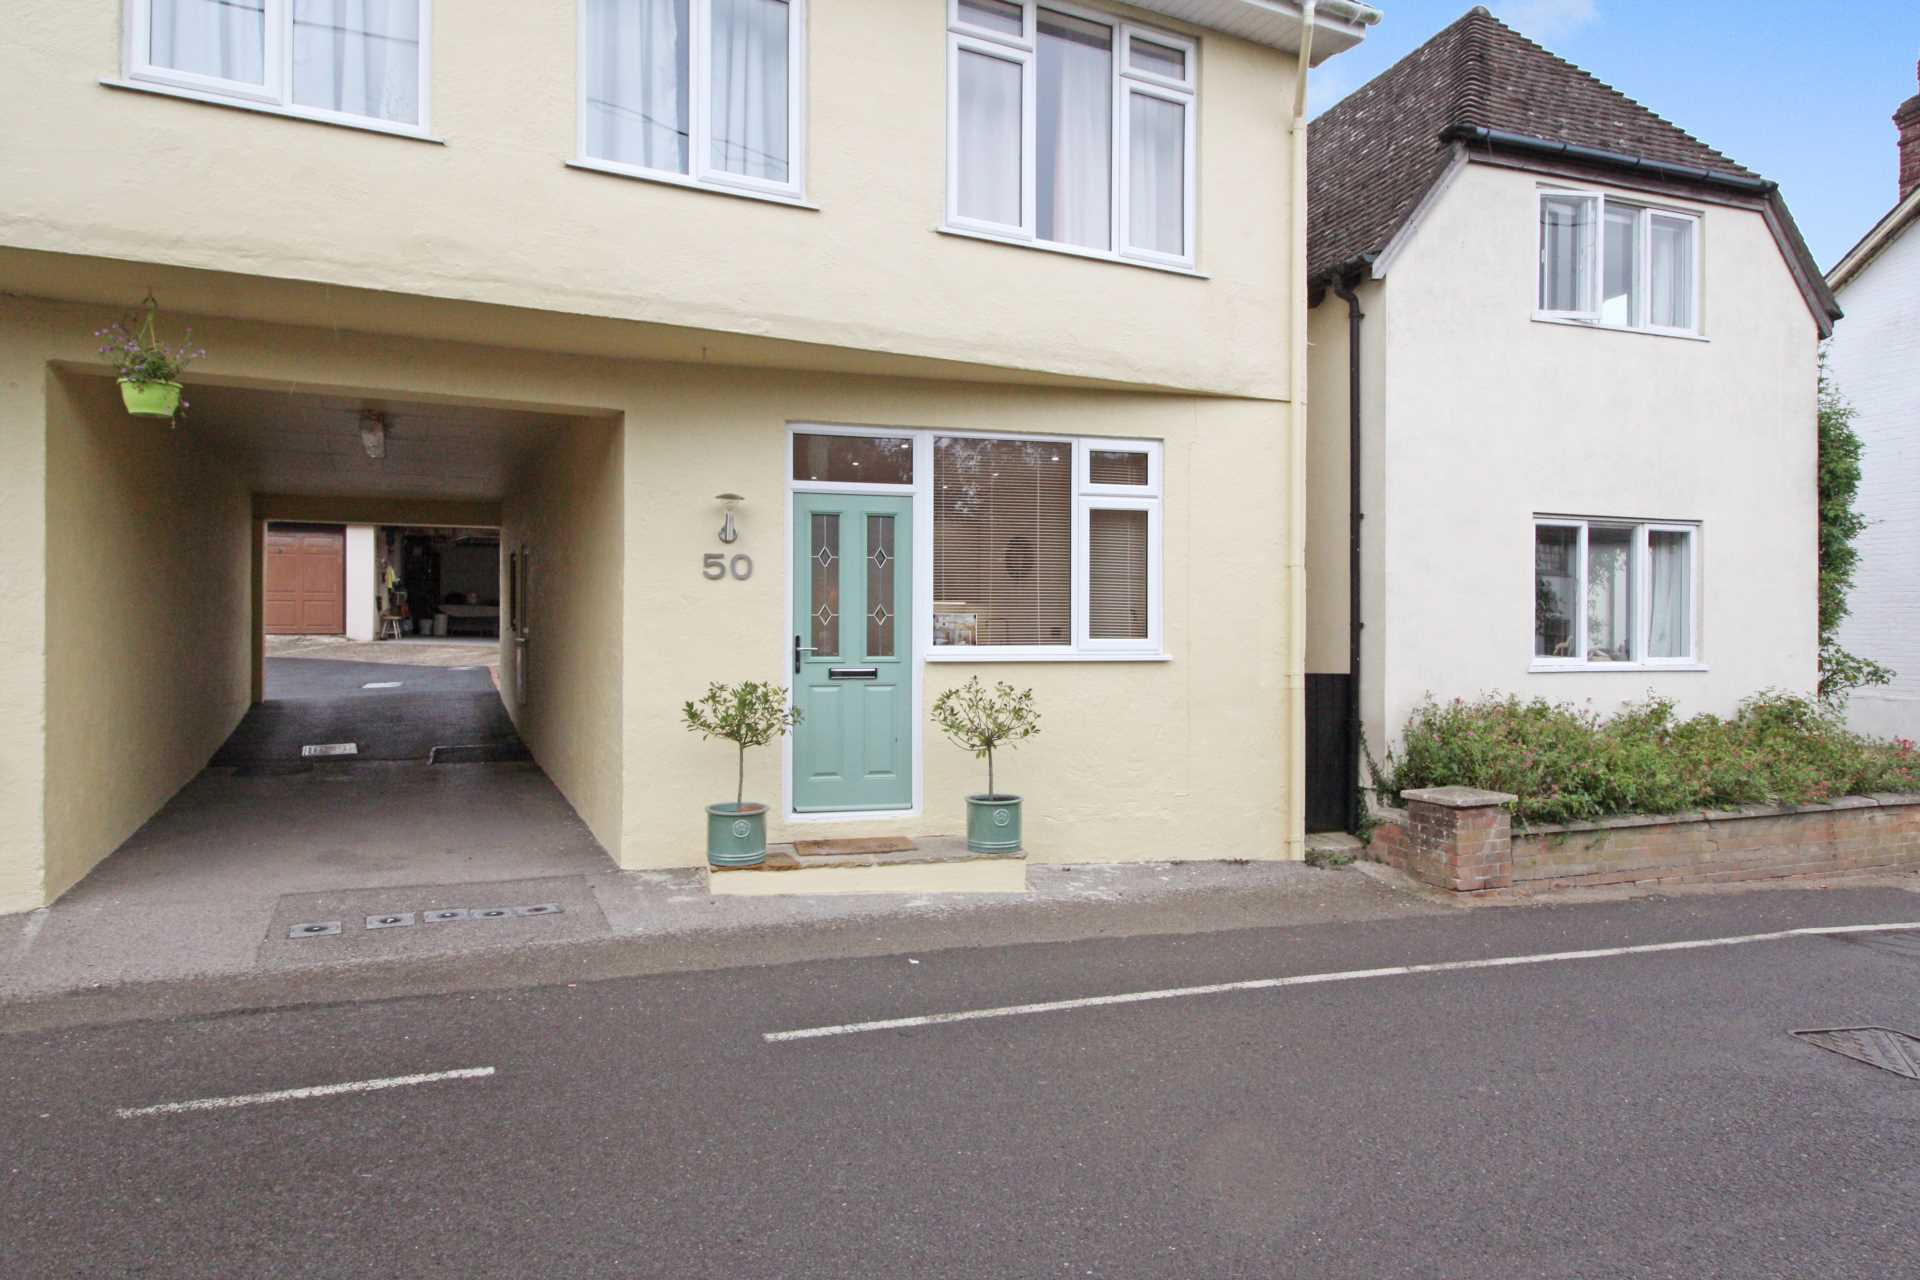 1 bed flat for sale in High Street, Sixpenny Handley, Salisbury 0